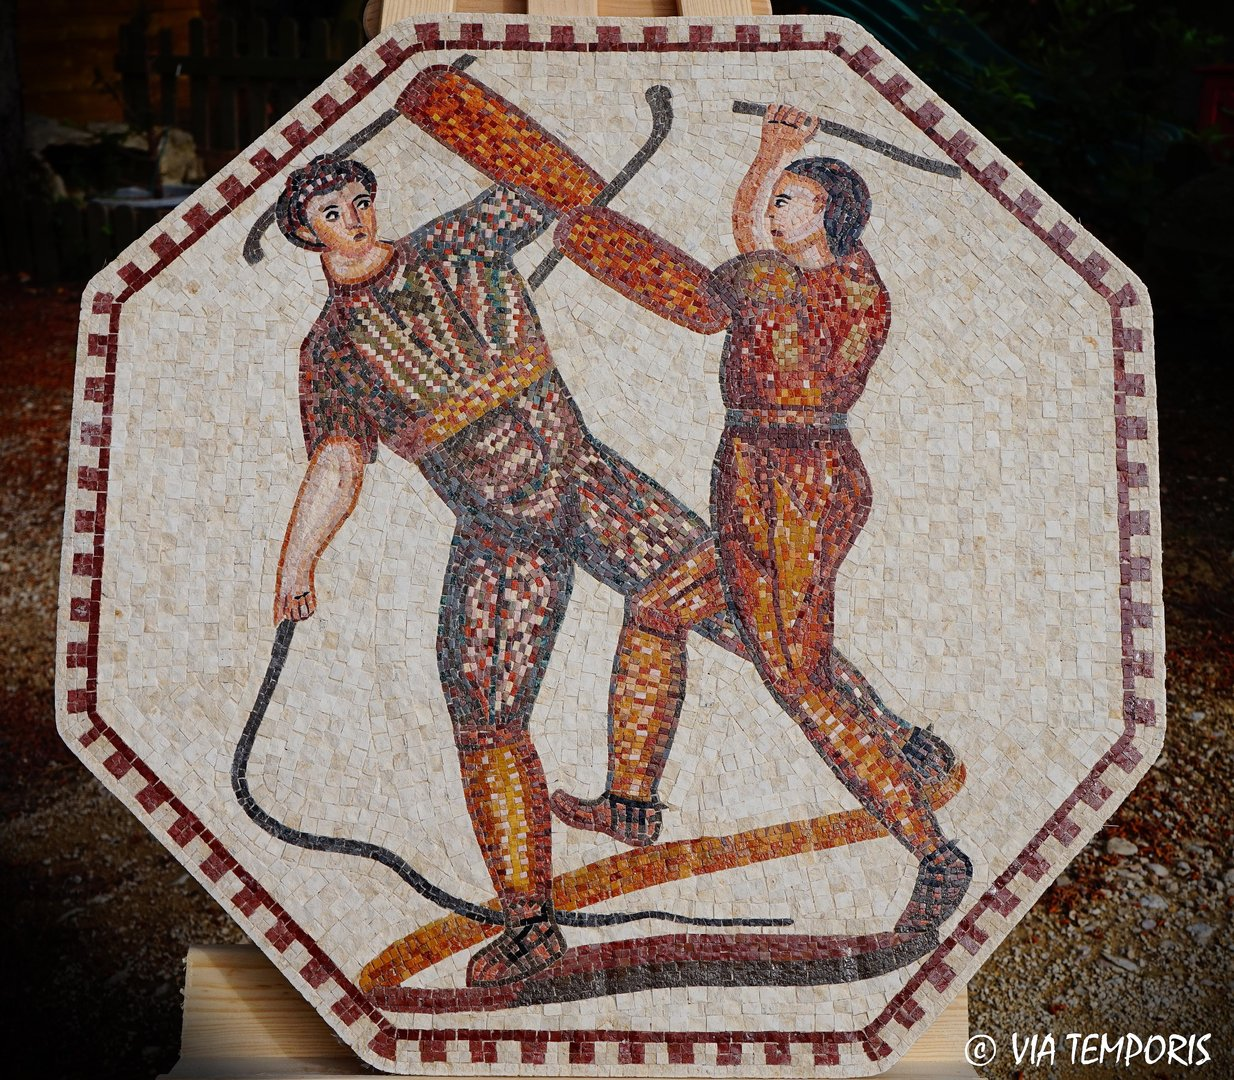 ROMAN MOSAIC - GLADIATORS FIGHT OF NENNIG II